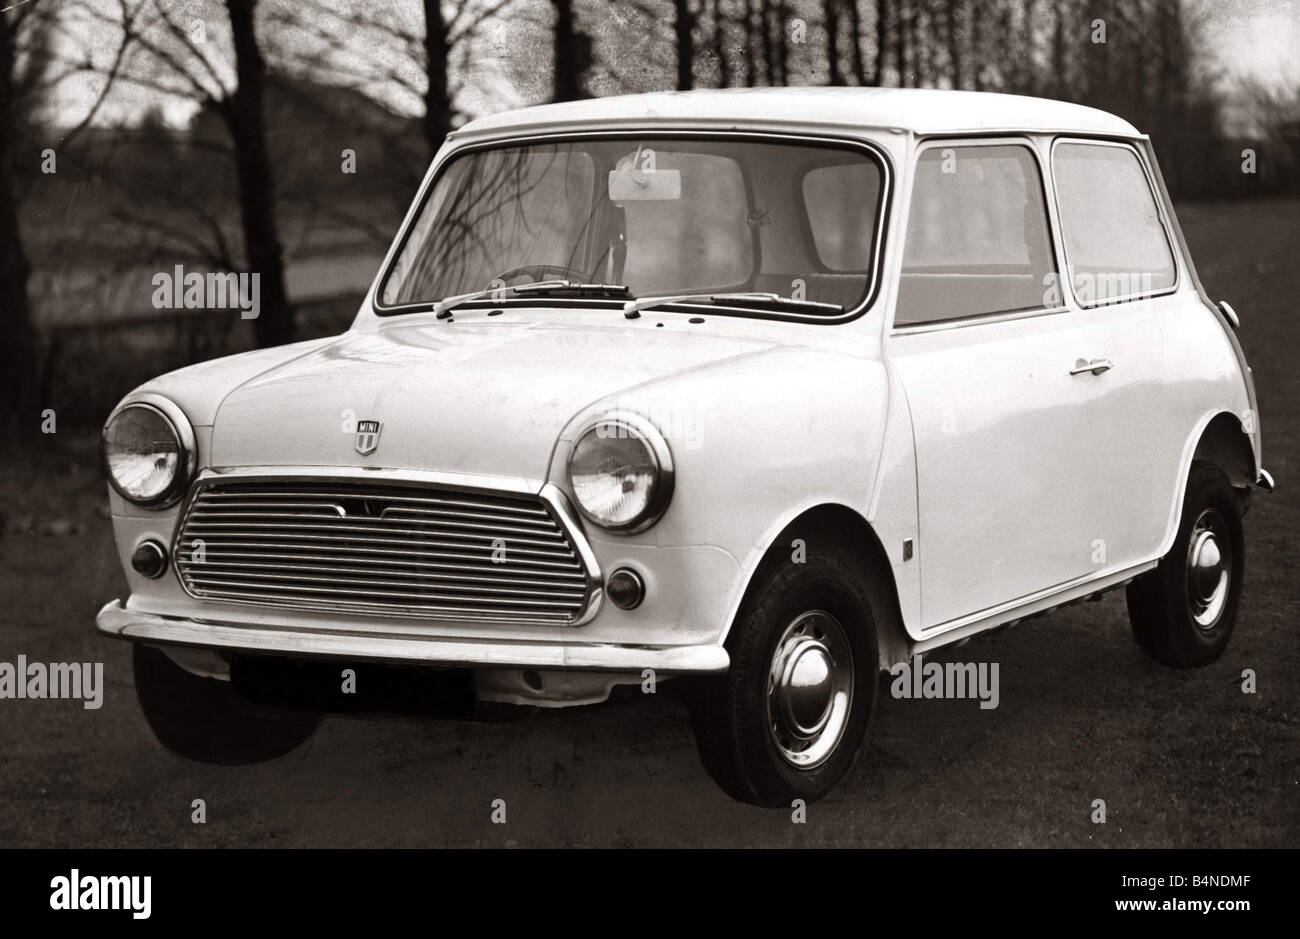 Mini Car 1960s Stock Photos Amp Mini Car 1960s Stock Images